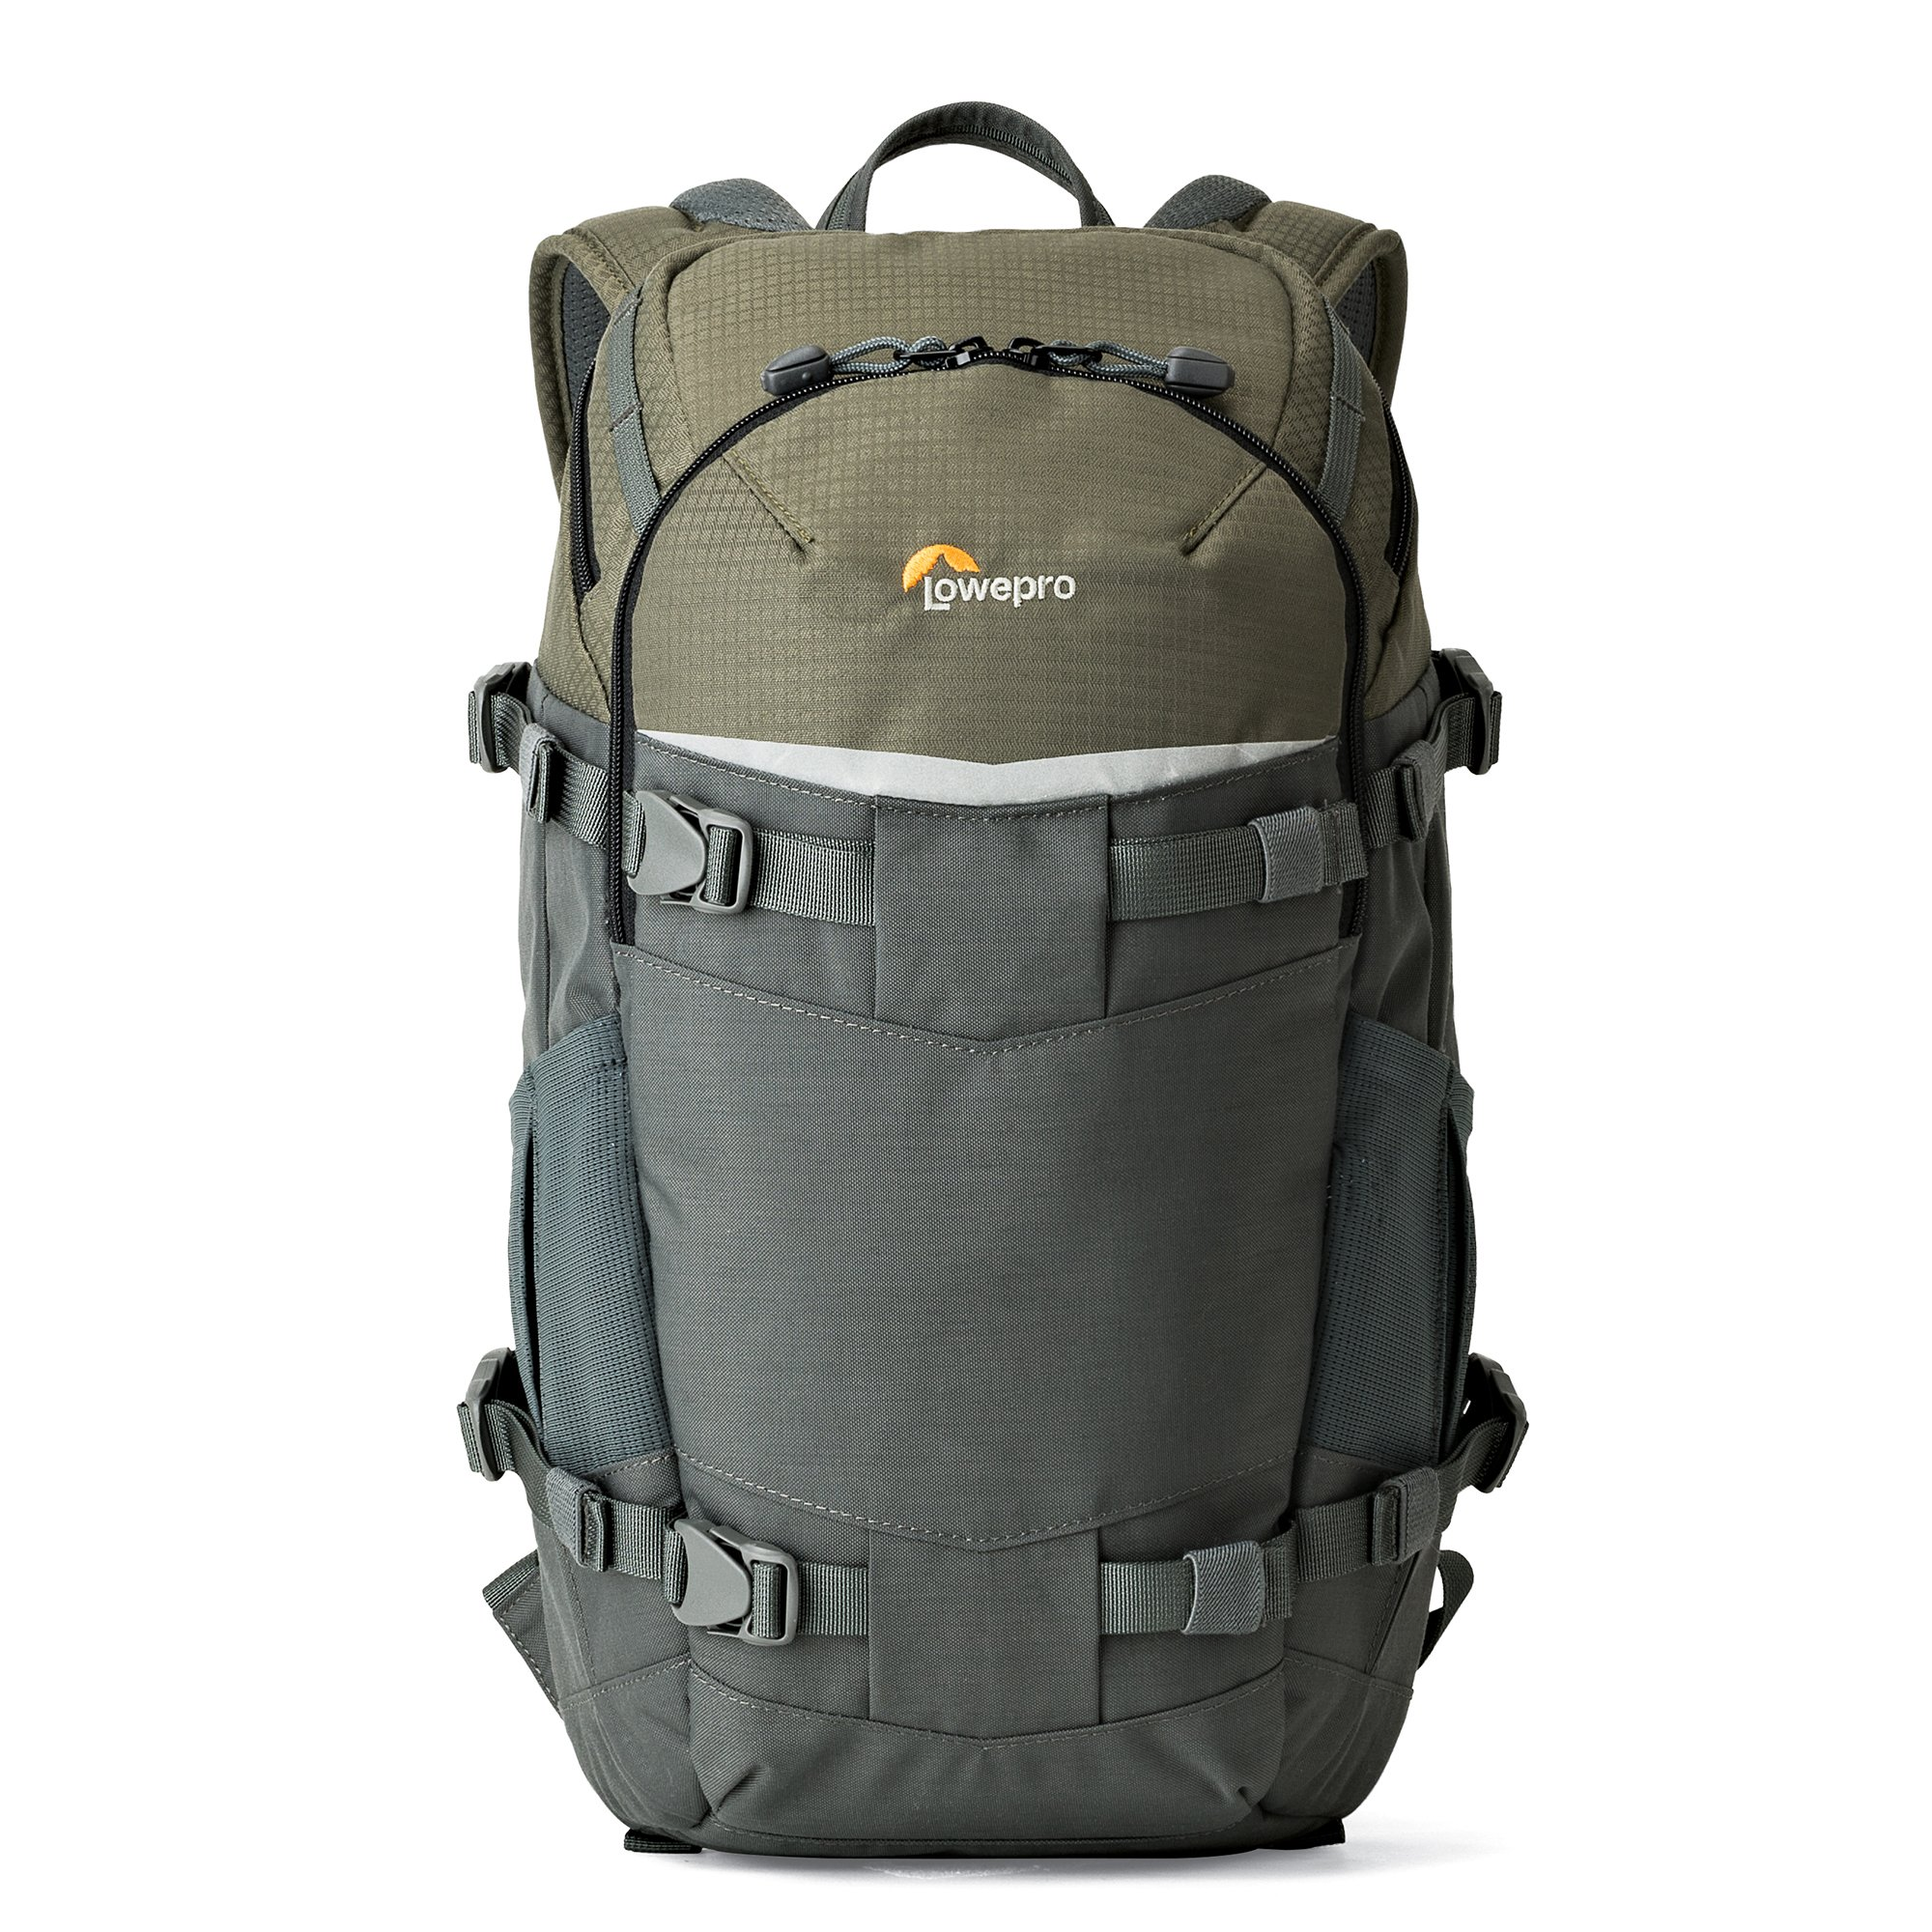 Lowepro Flipside Trek BP 250 AW - Outdoor Camera Backpack for Mirrorless or Compact DSLR w/ Rain Cover and Tablet Pocket. by Lowepro (Image #1)